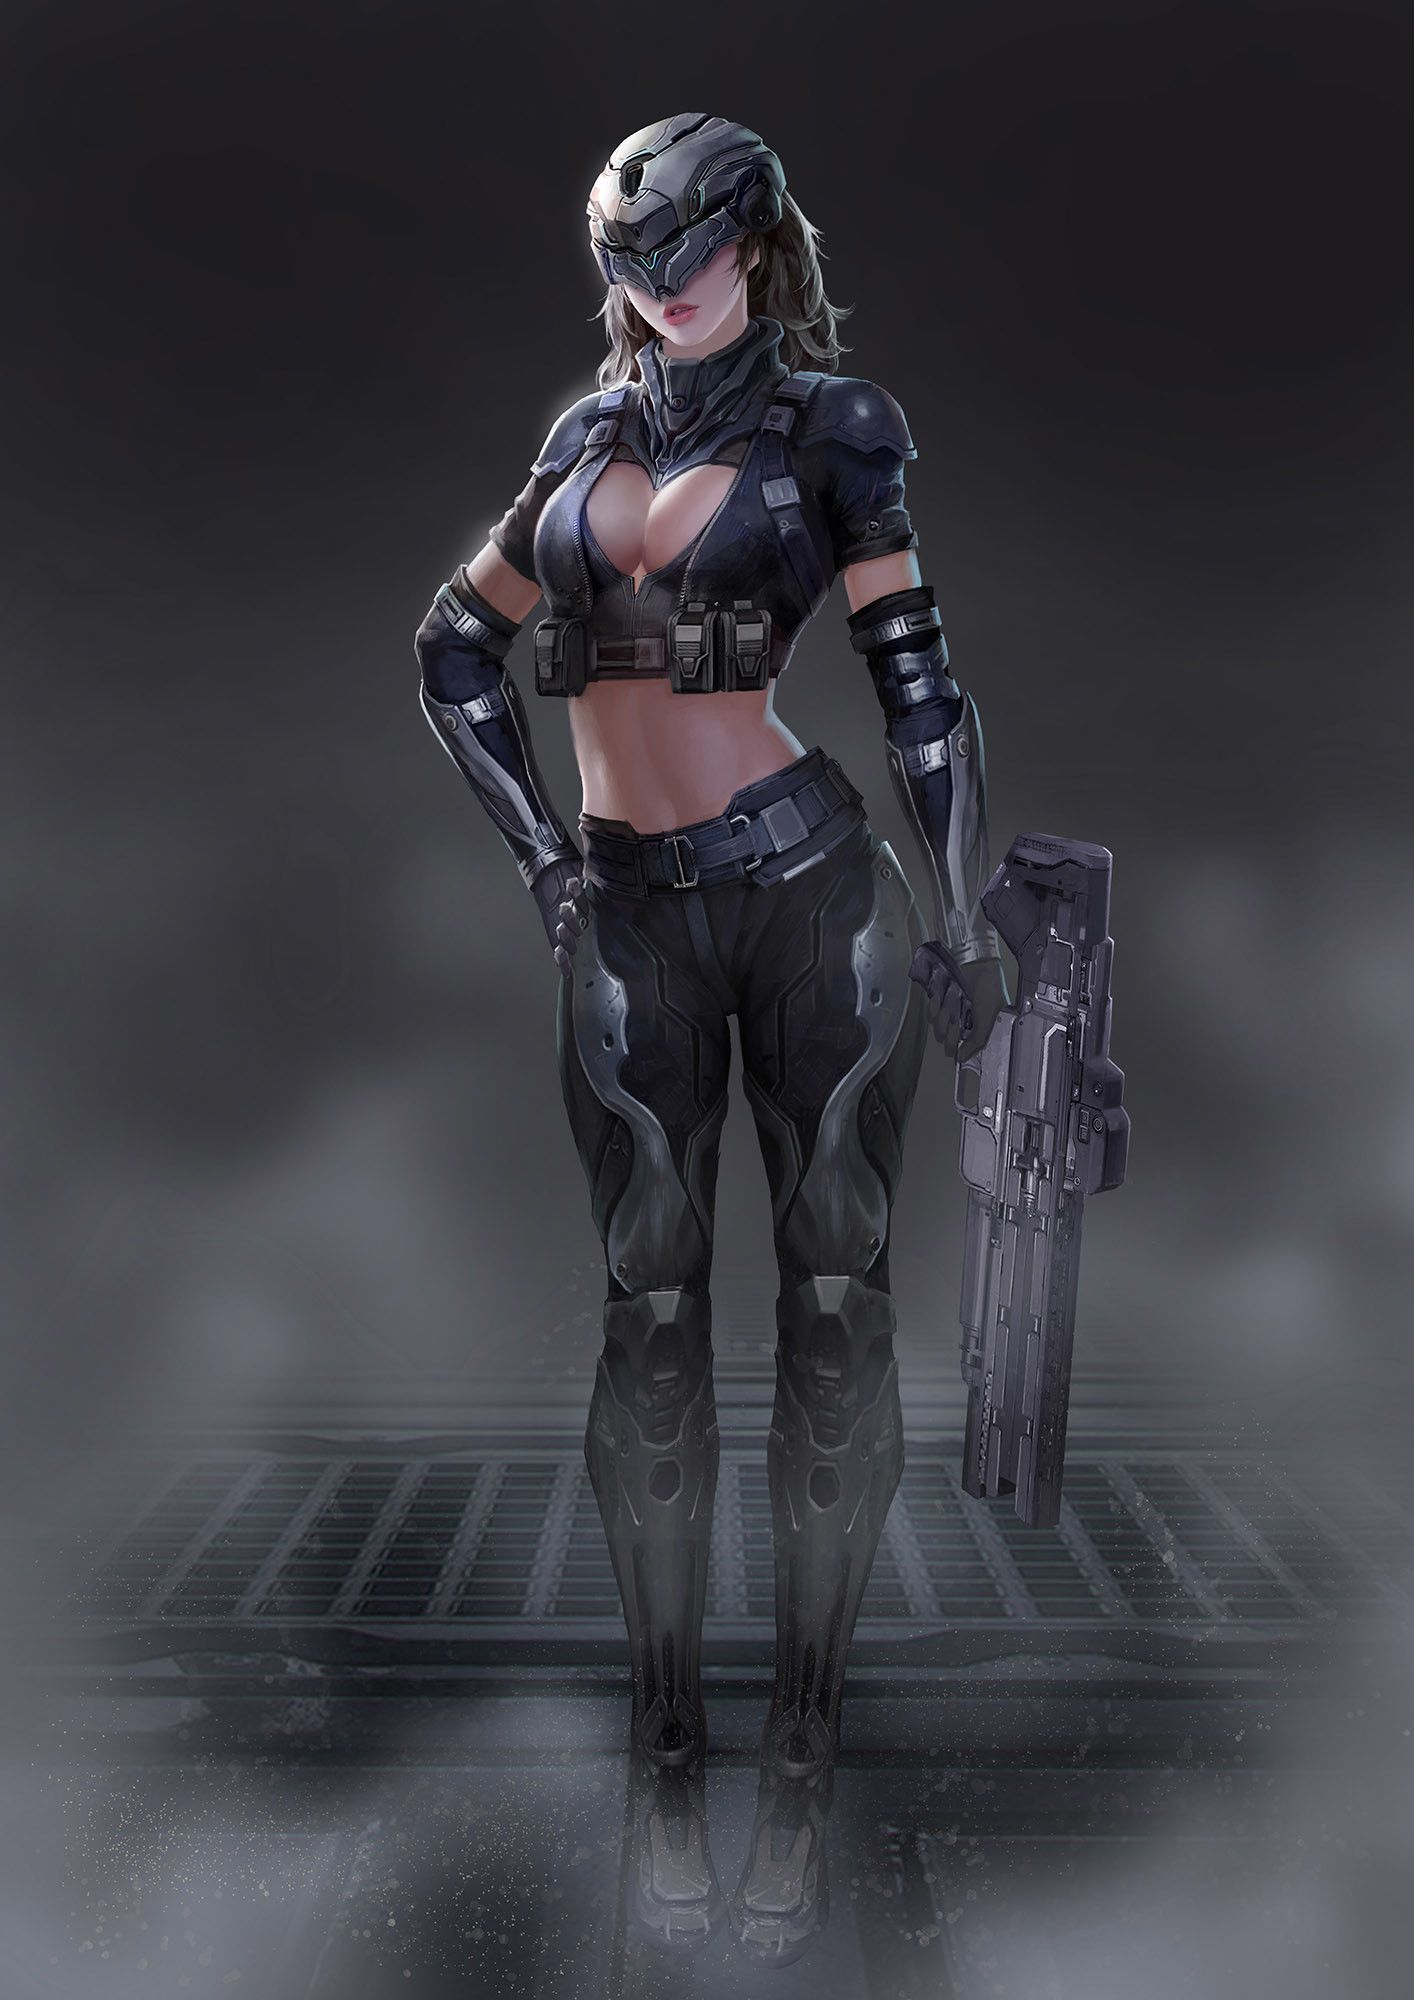 Pin By Don Mcann On Sci Fi Sci Fi Characters Fantasy Art